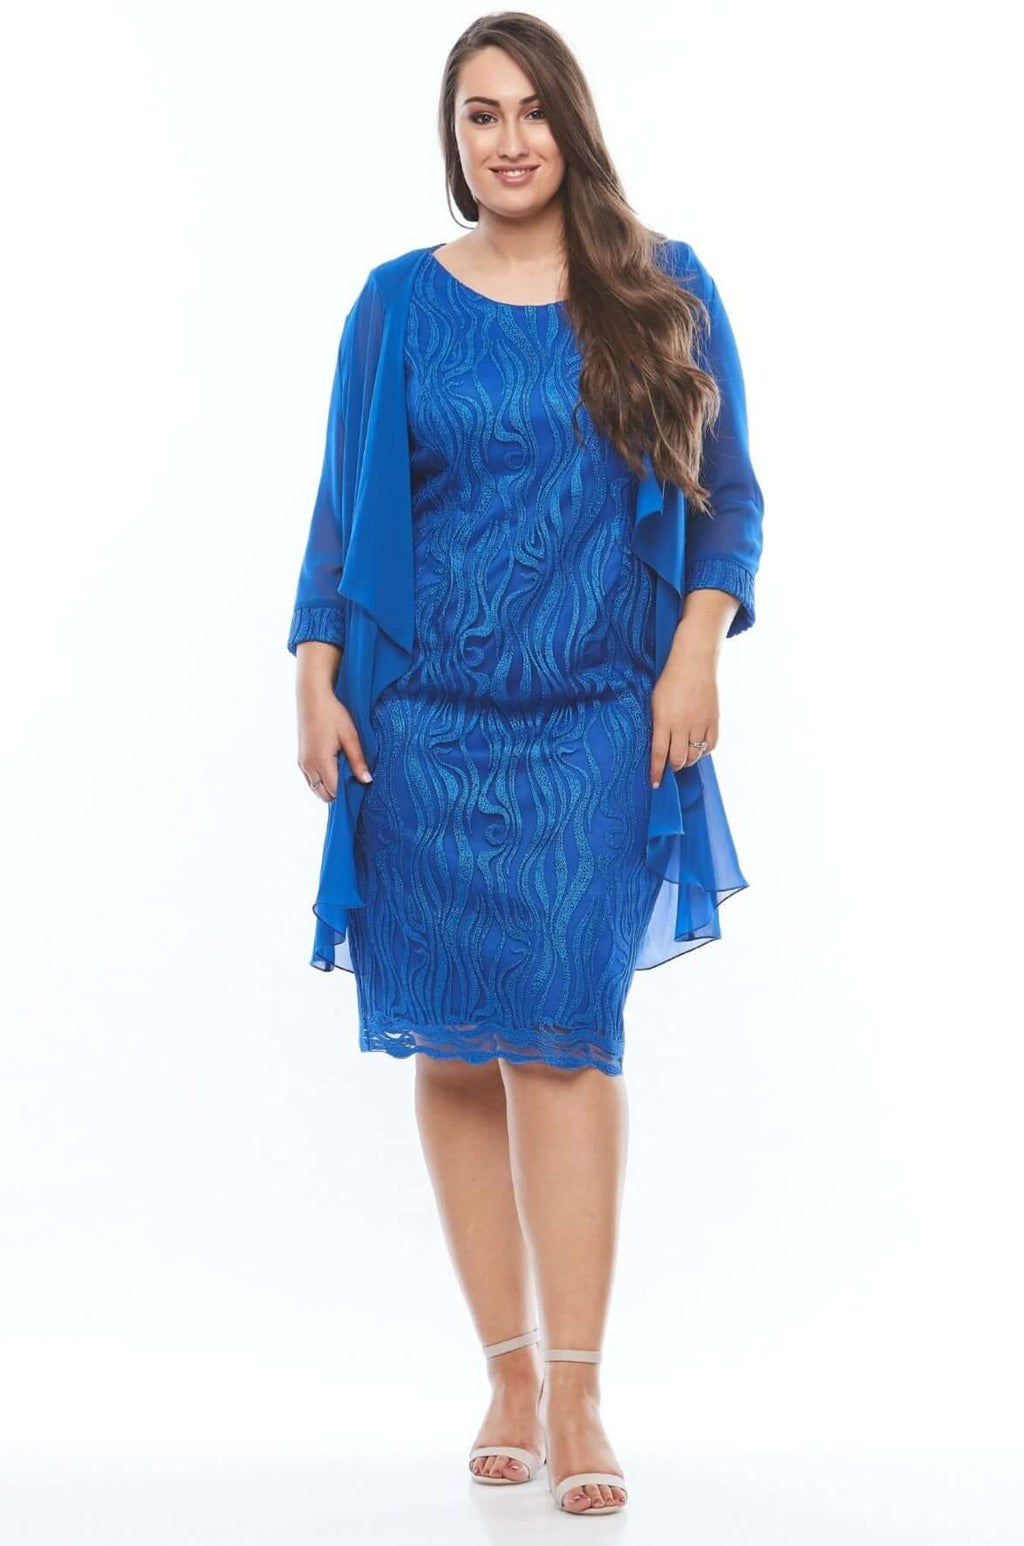 Layla Jones Electric Blue Dress & Jacket LJ0307